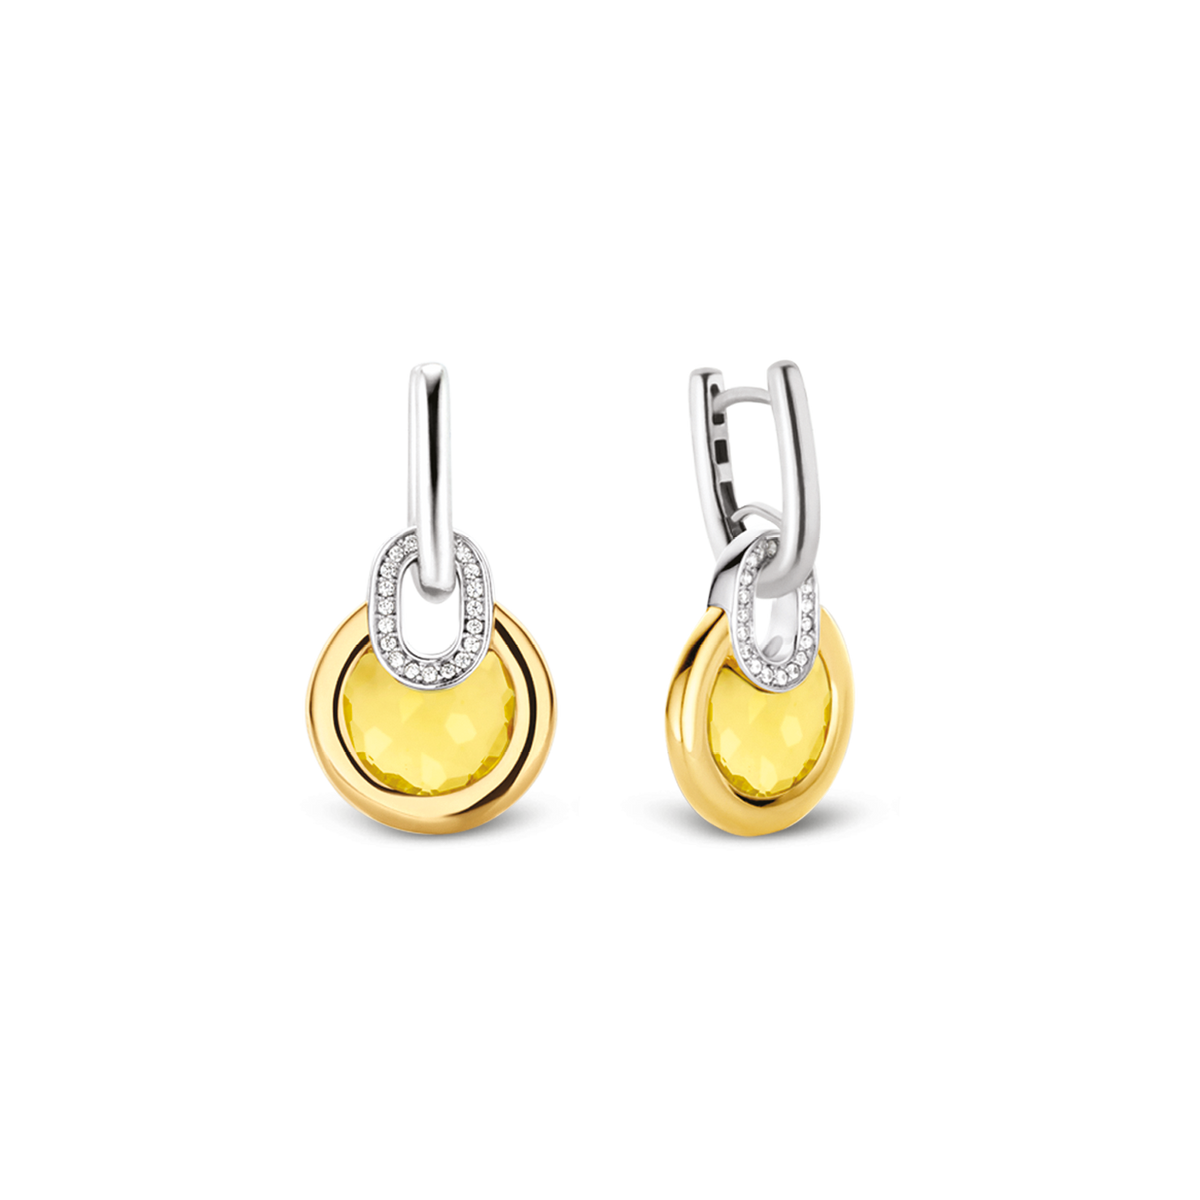 TI SENTO - Milano Earrings 7795TY